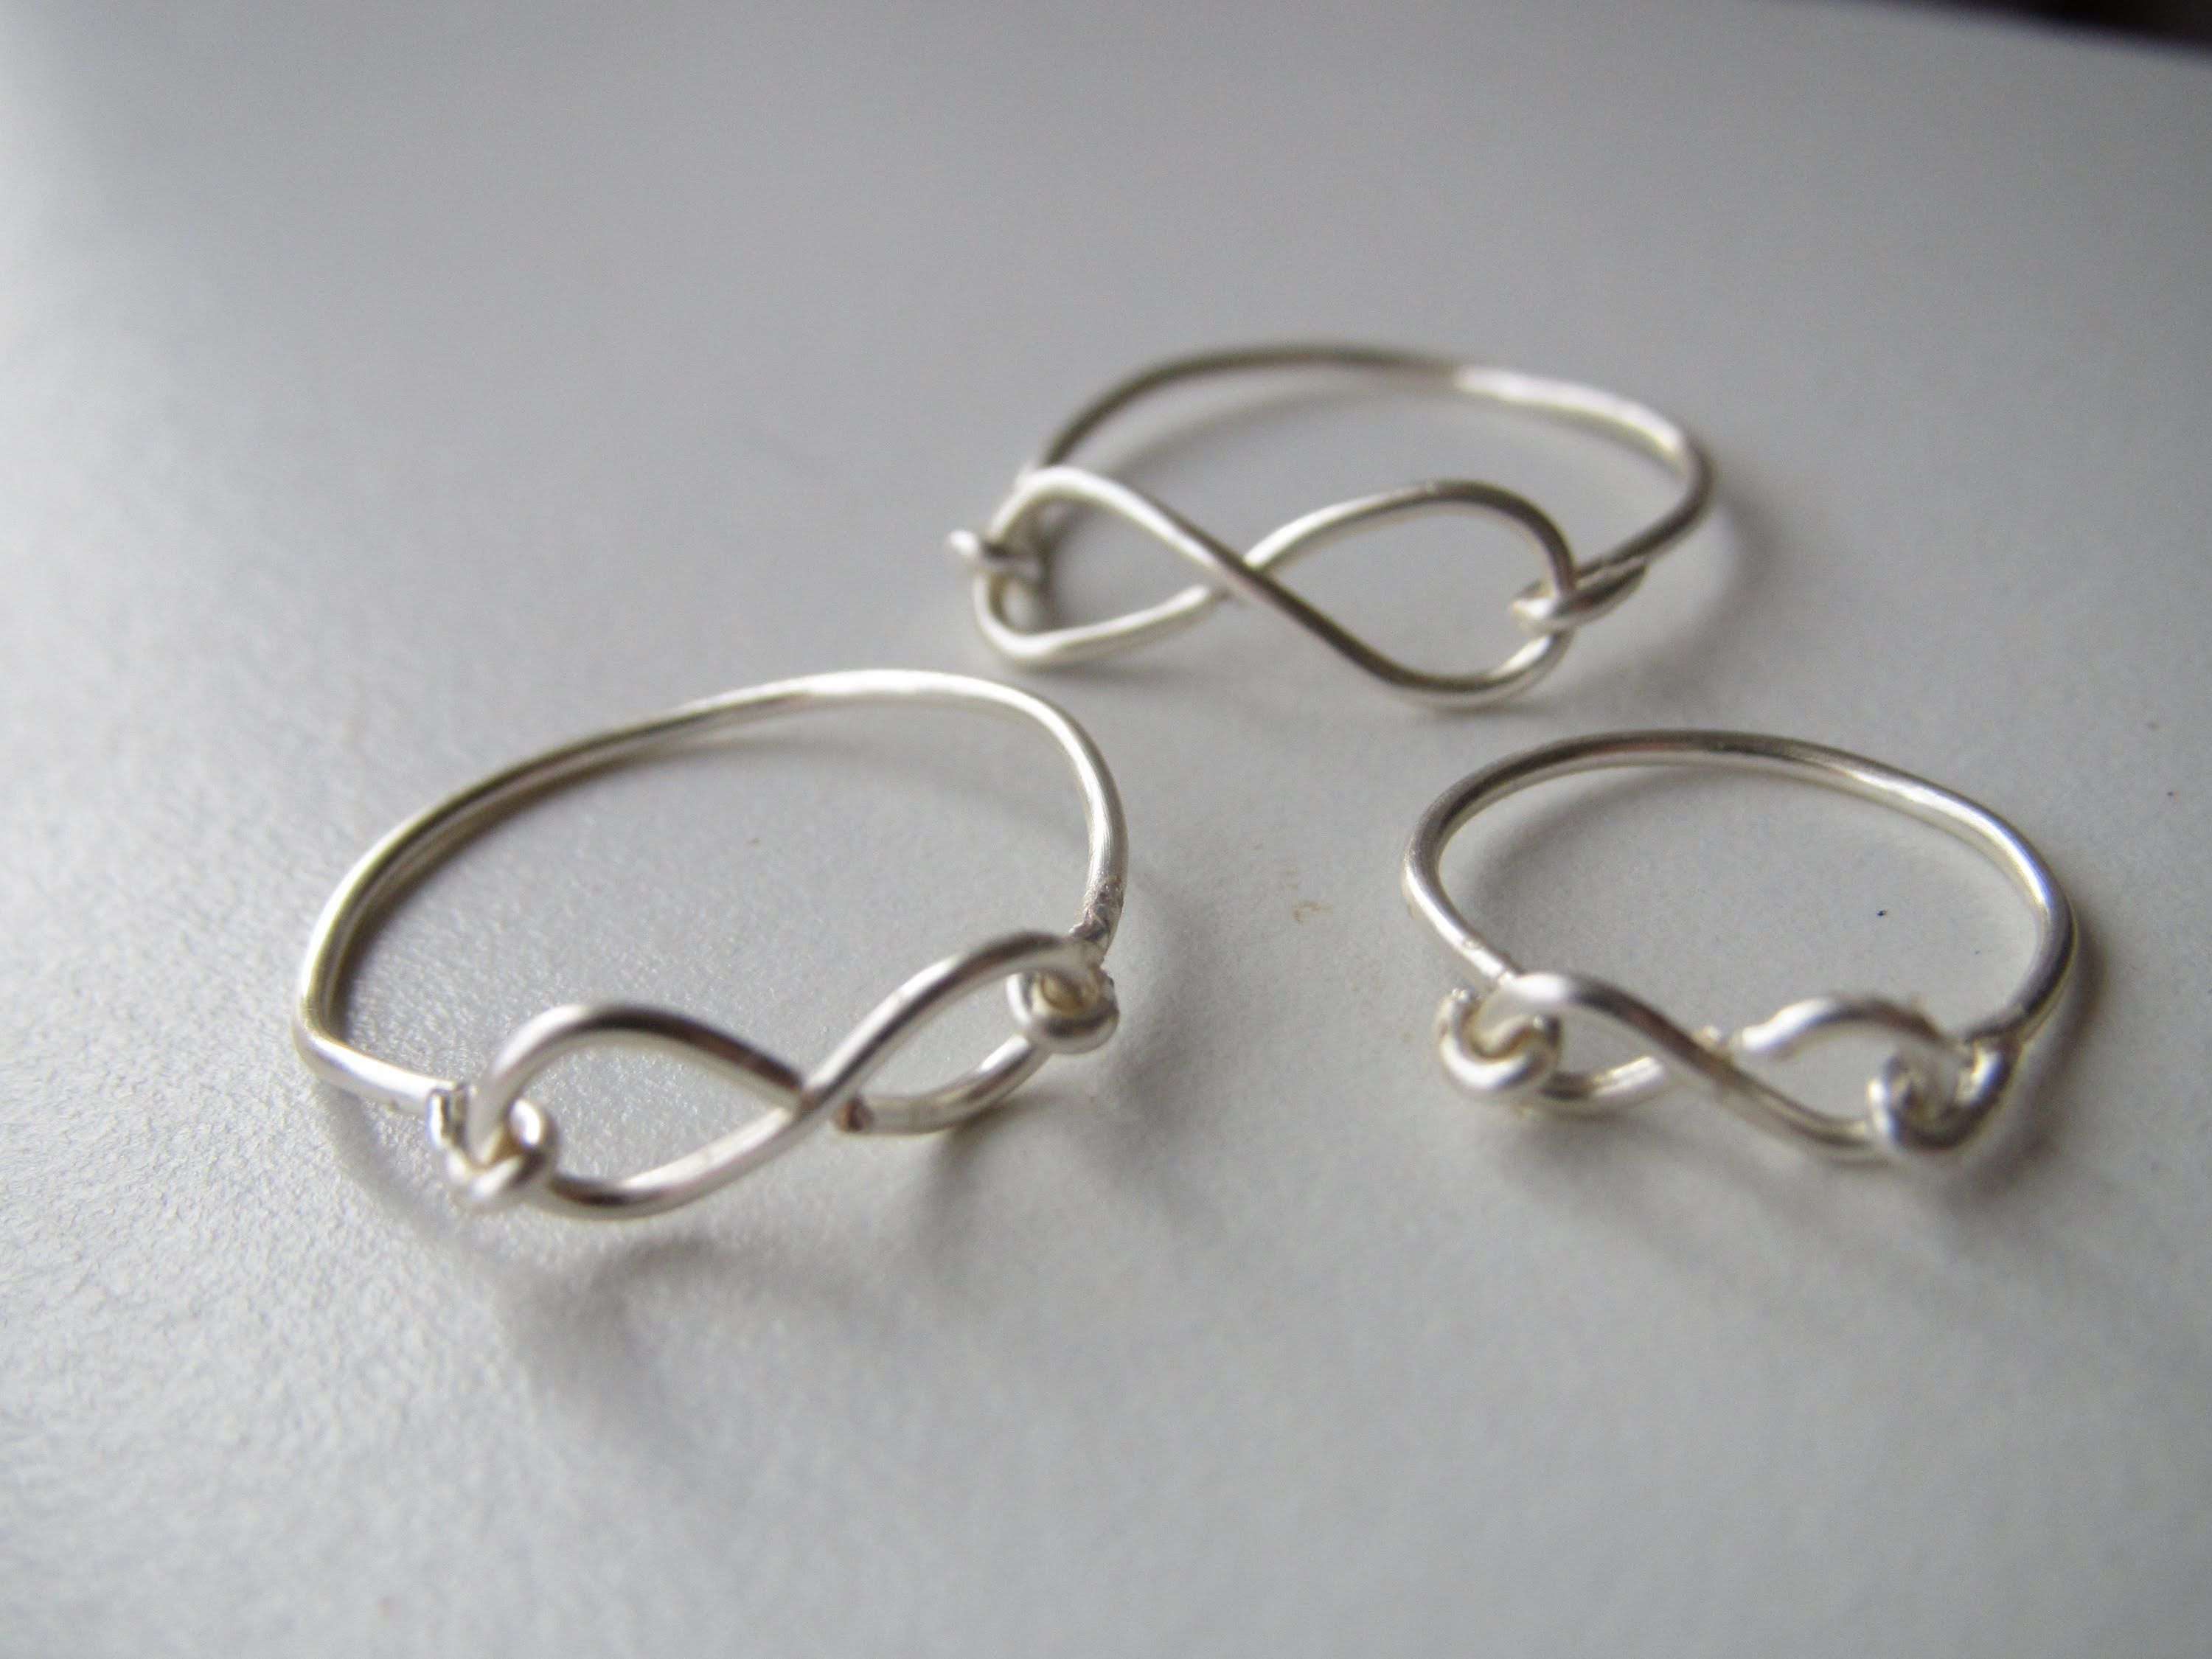 Make Charms Into Wire Wrap Rings